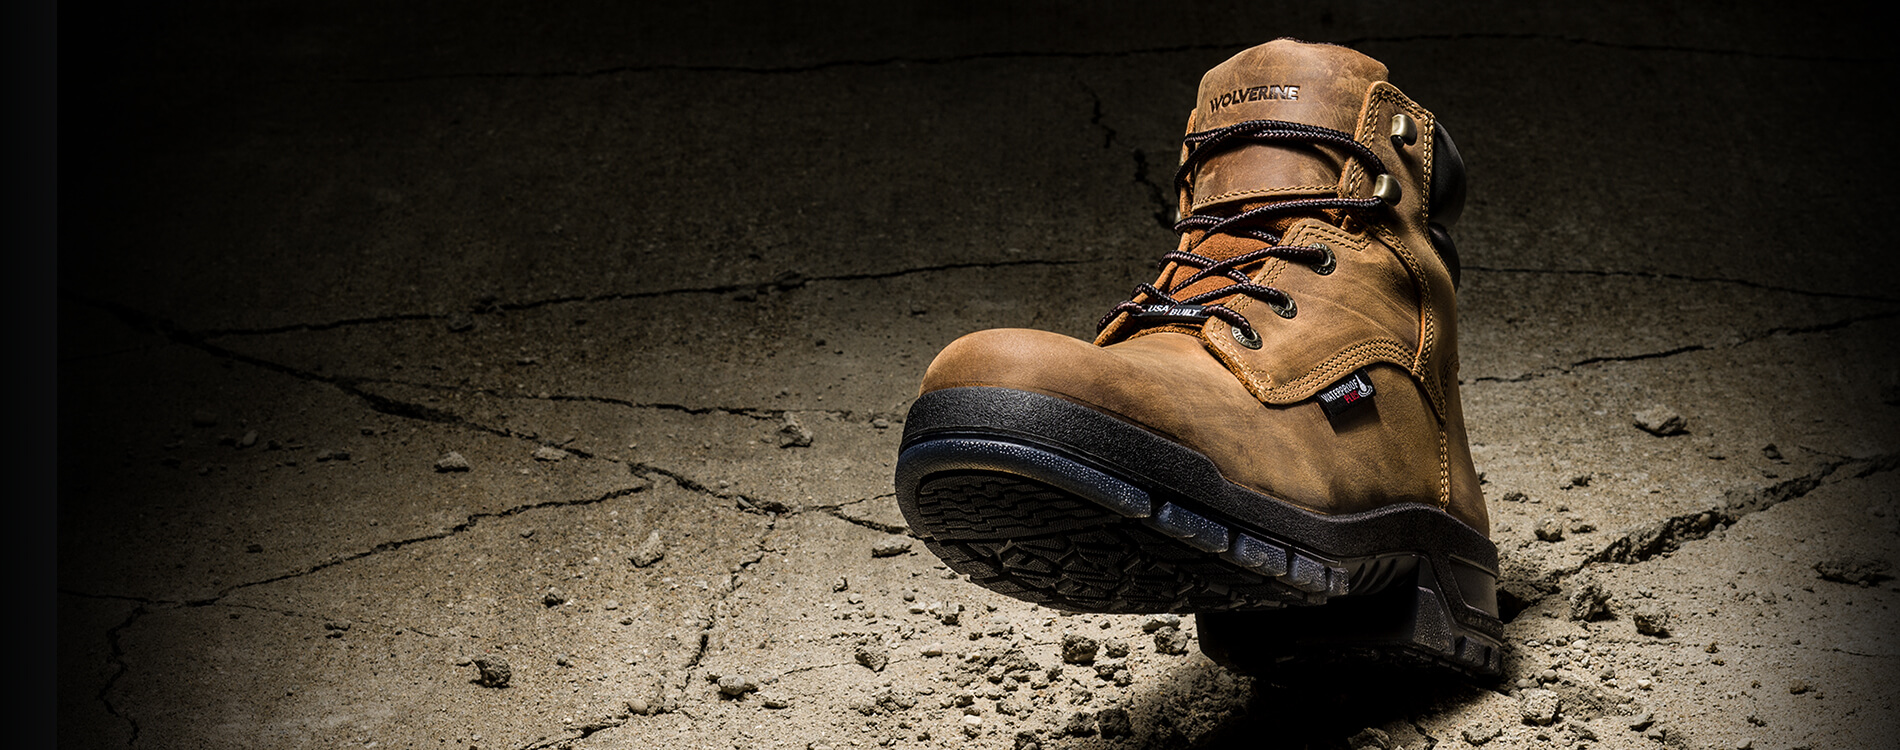 A boot cracks concrete with its heel!